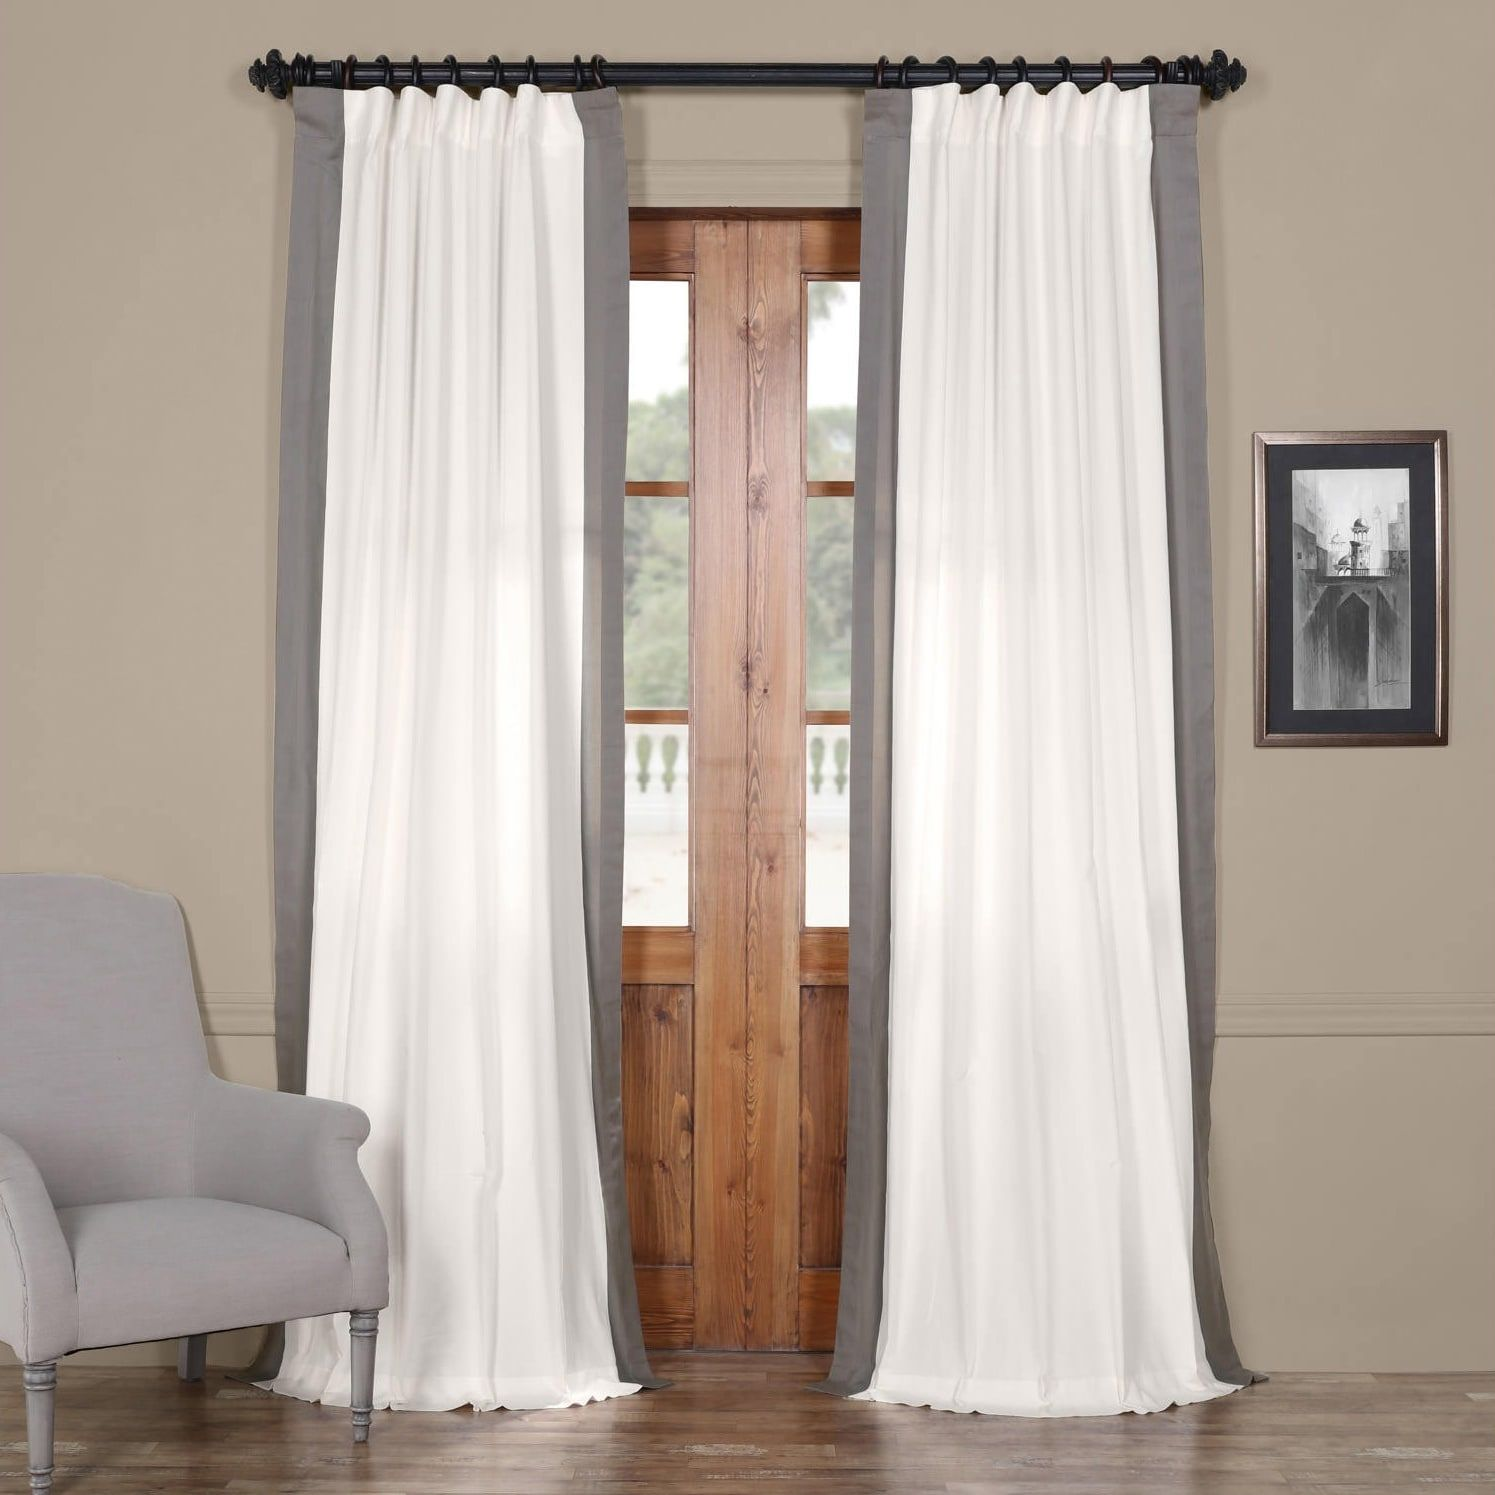 shipping sxs top of popular drapes sheers stunning overstock polka grommet uncategorized piece curtains kids and dot ideas blackout window panels